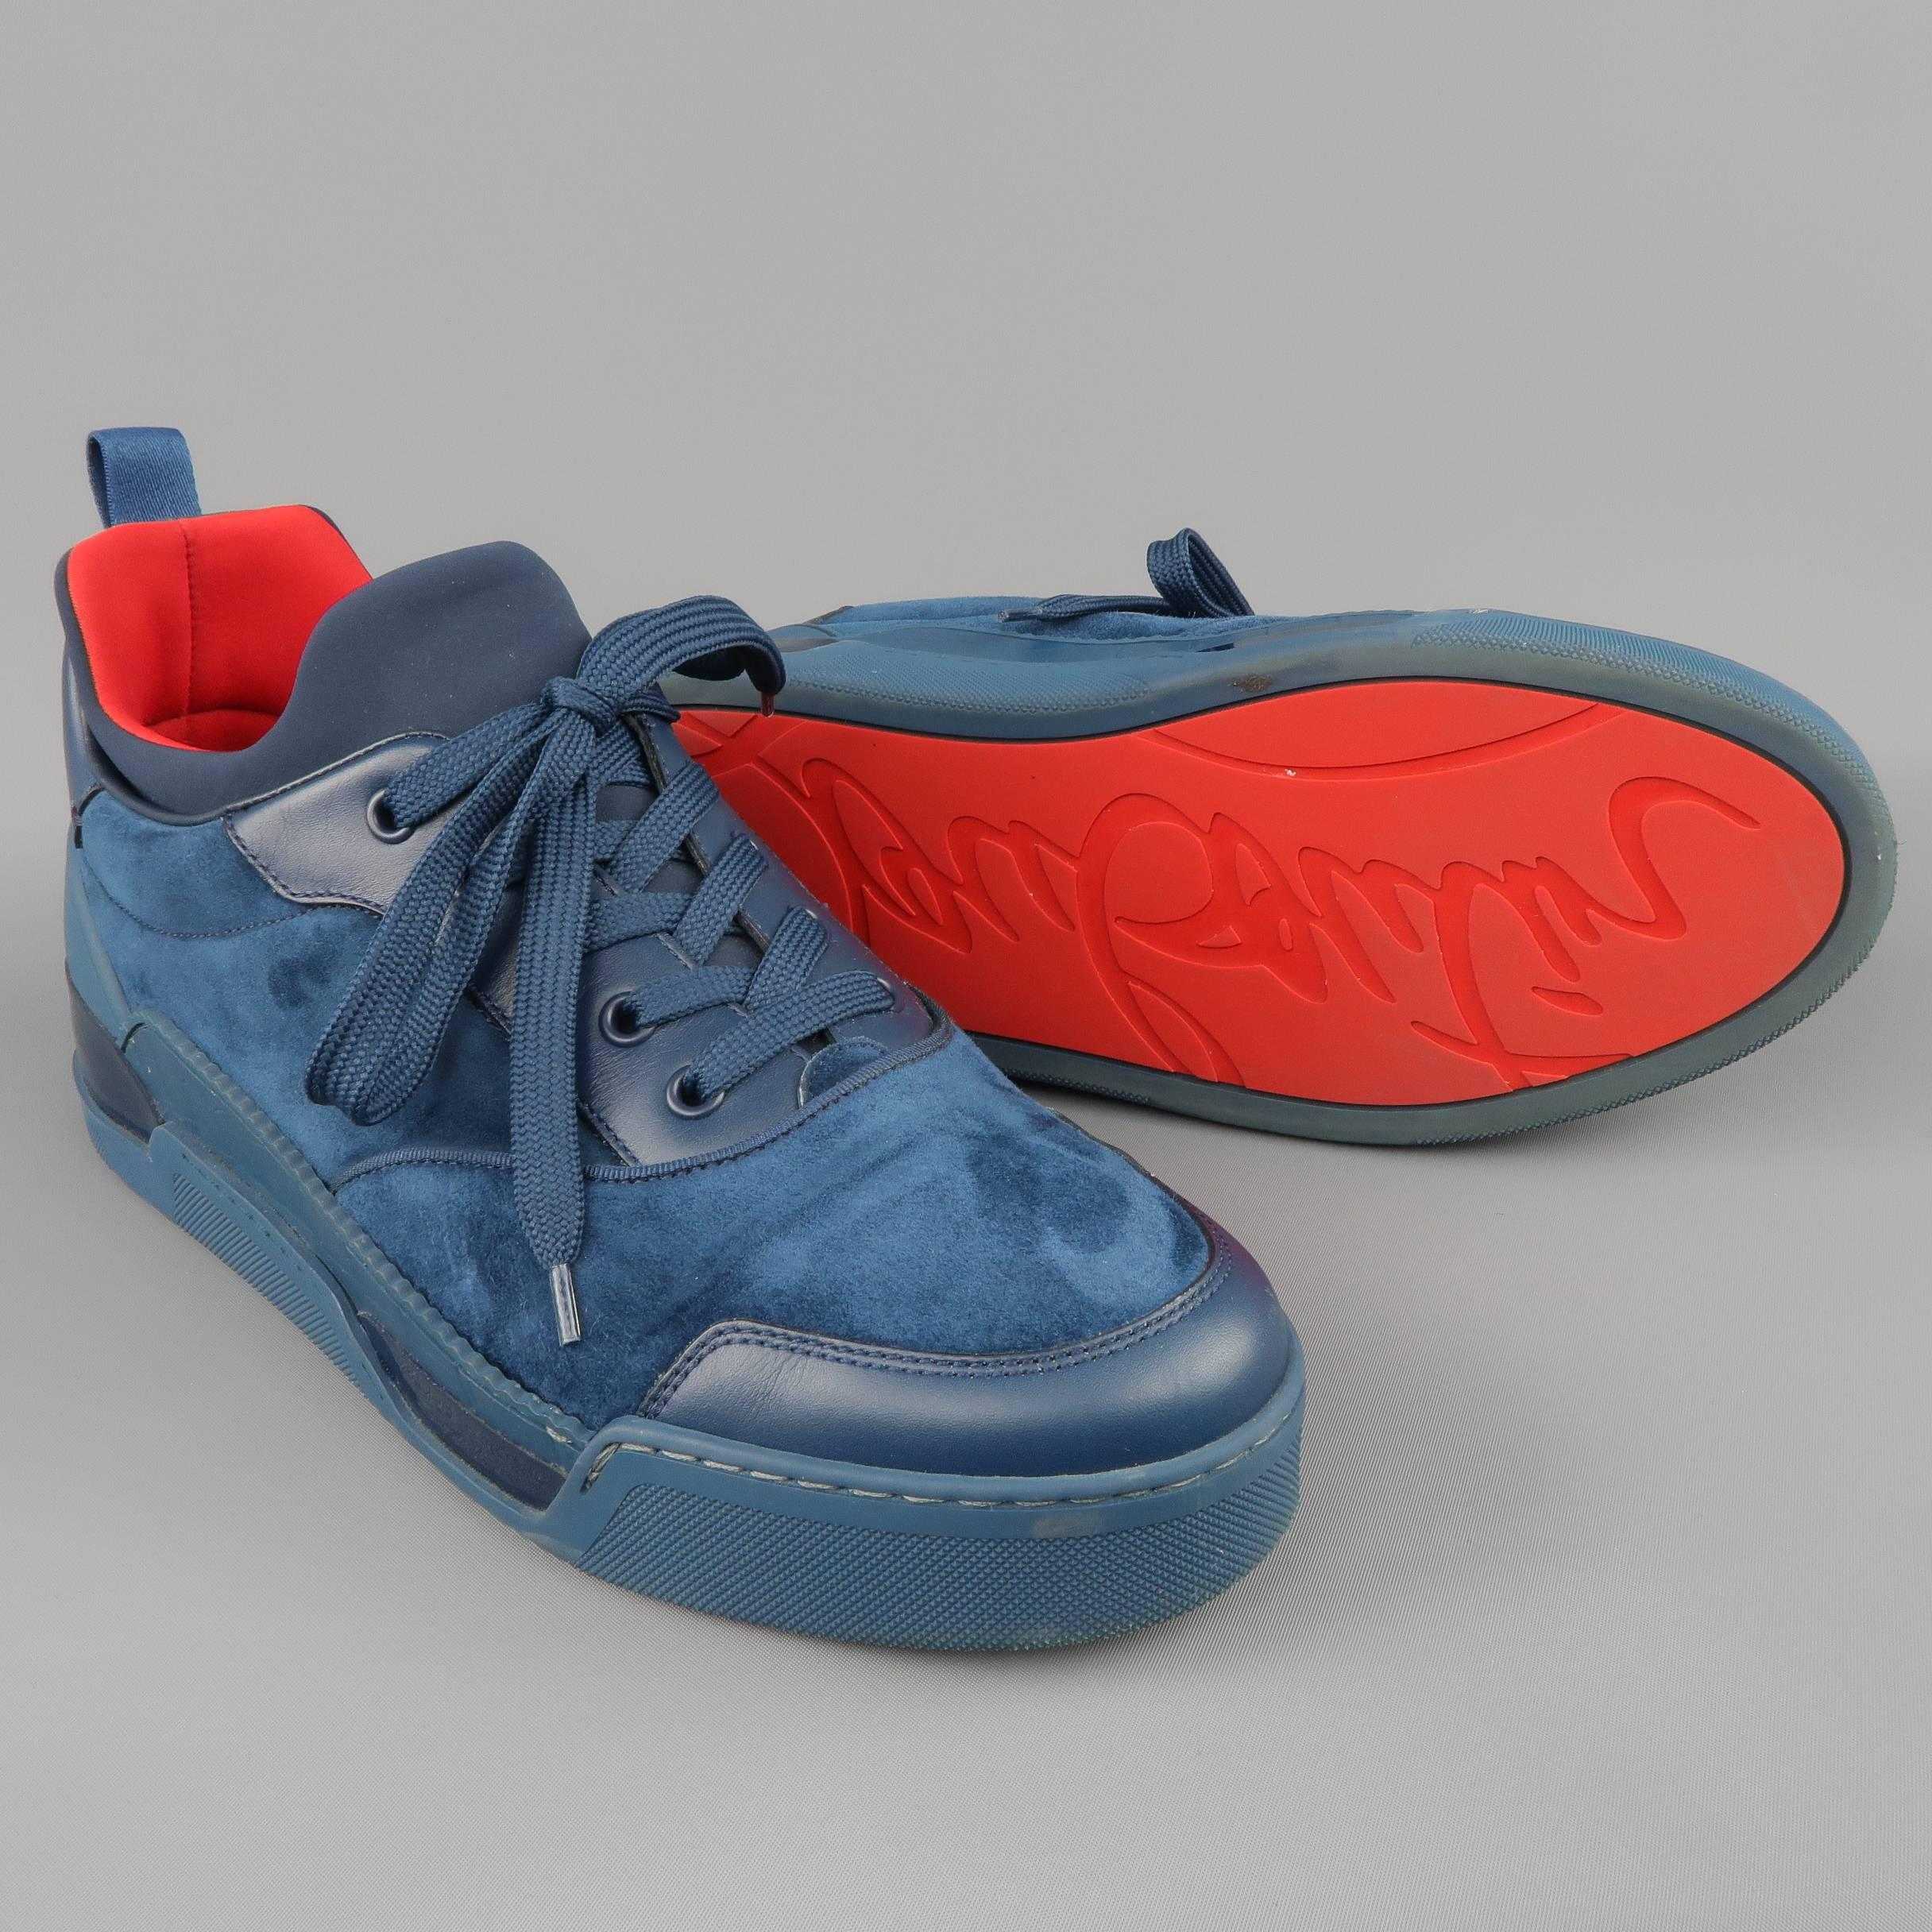 1a403361071 Men s CHRISTIAN LOUBOUTIN Sneakers US 10 Navy Suede and Leather AURELIEN  FLAT at 1stdibs